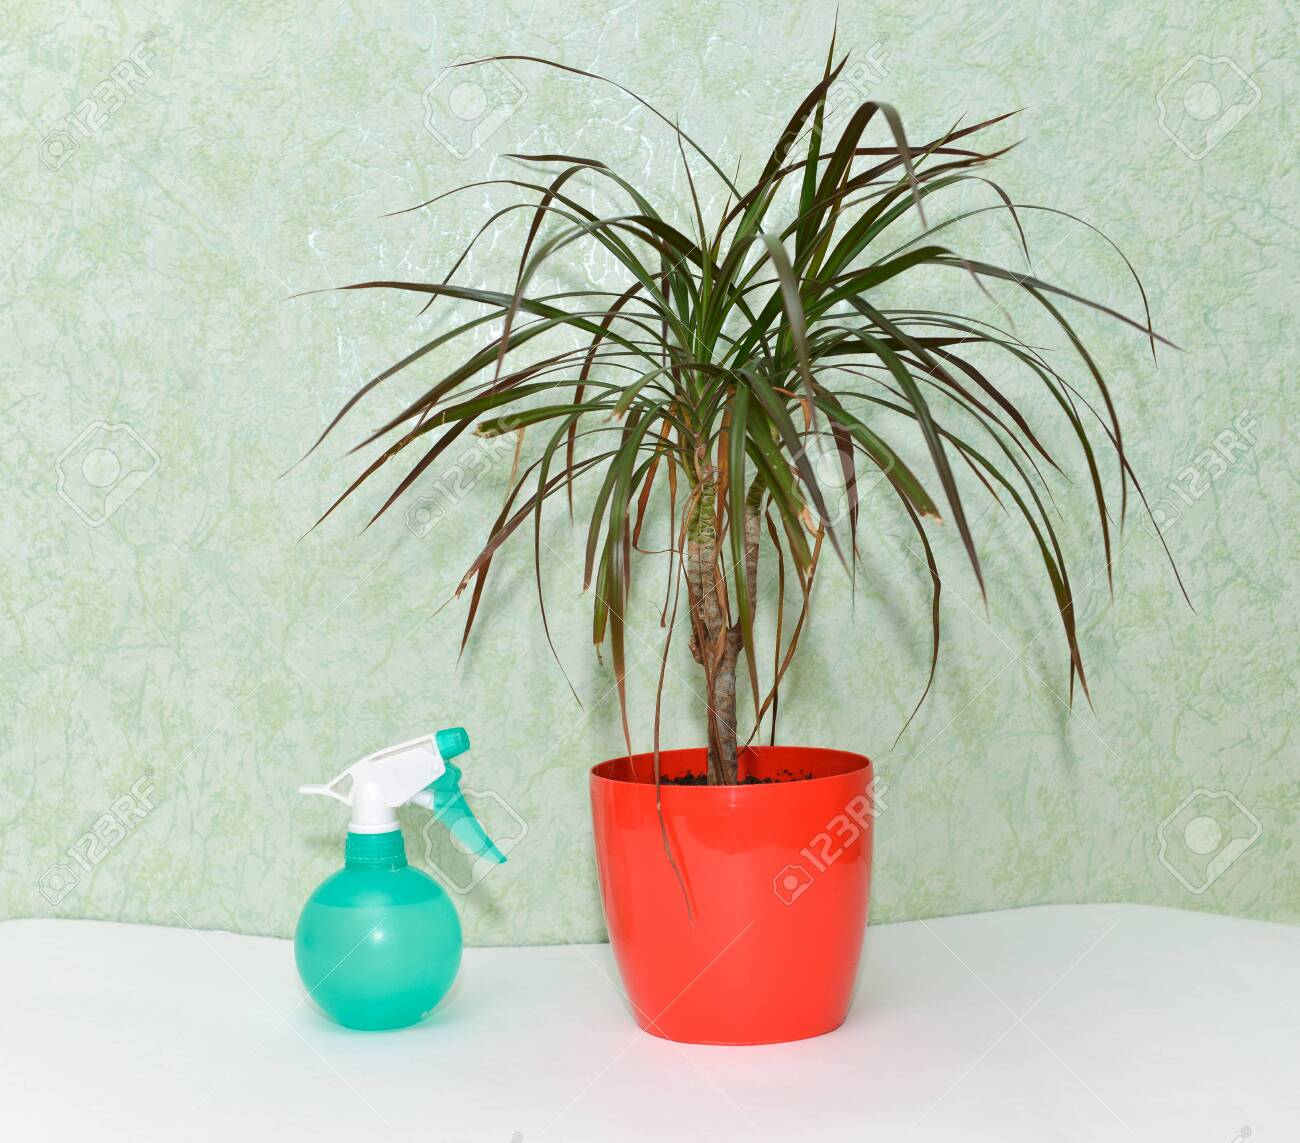 dry home flower care watering home plants palm tree dracaena Palm Plant For Home on herb plants for home, vine plants for home, potted plants for home, tropical plants for home, water plants for home, decorative plants for home, indoor plants for home,